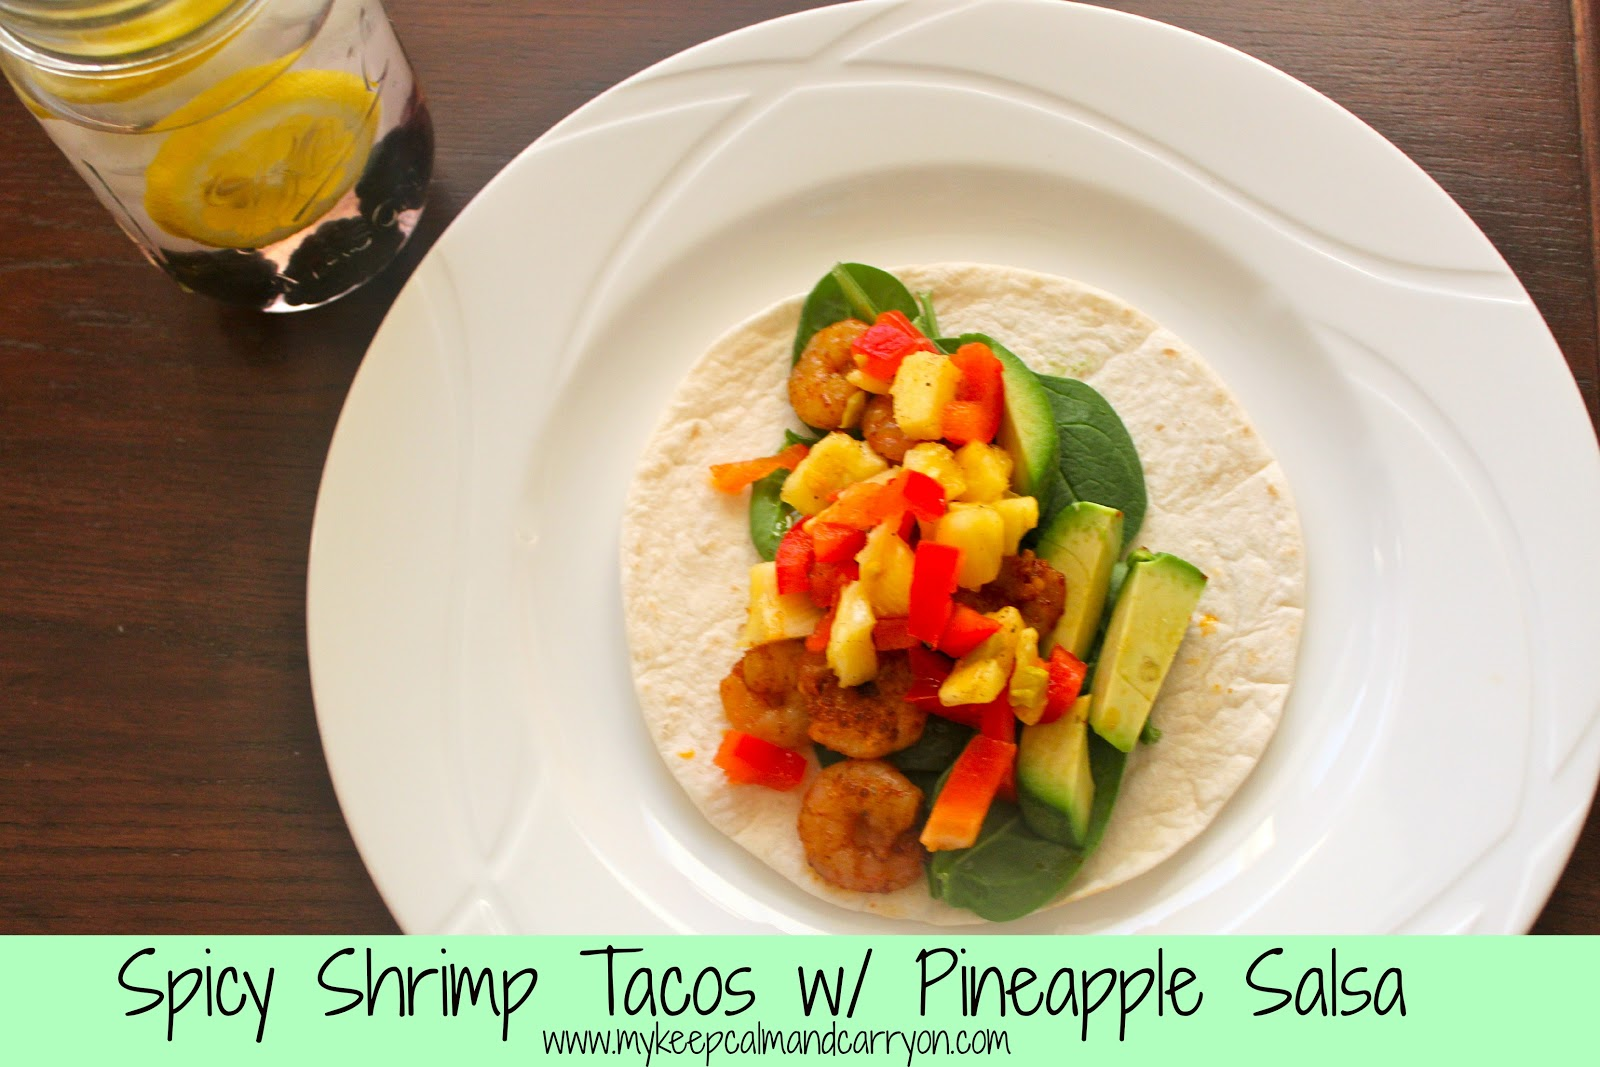 KEEP CALM AND CARRY ON: Spicy Shrimp Tacos with Pineapple Salsa